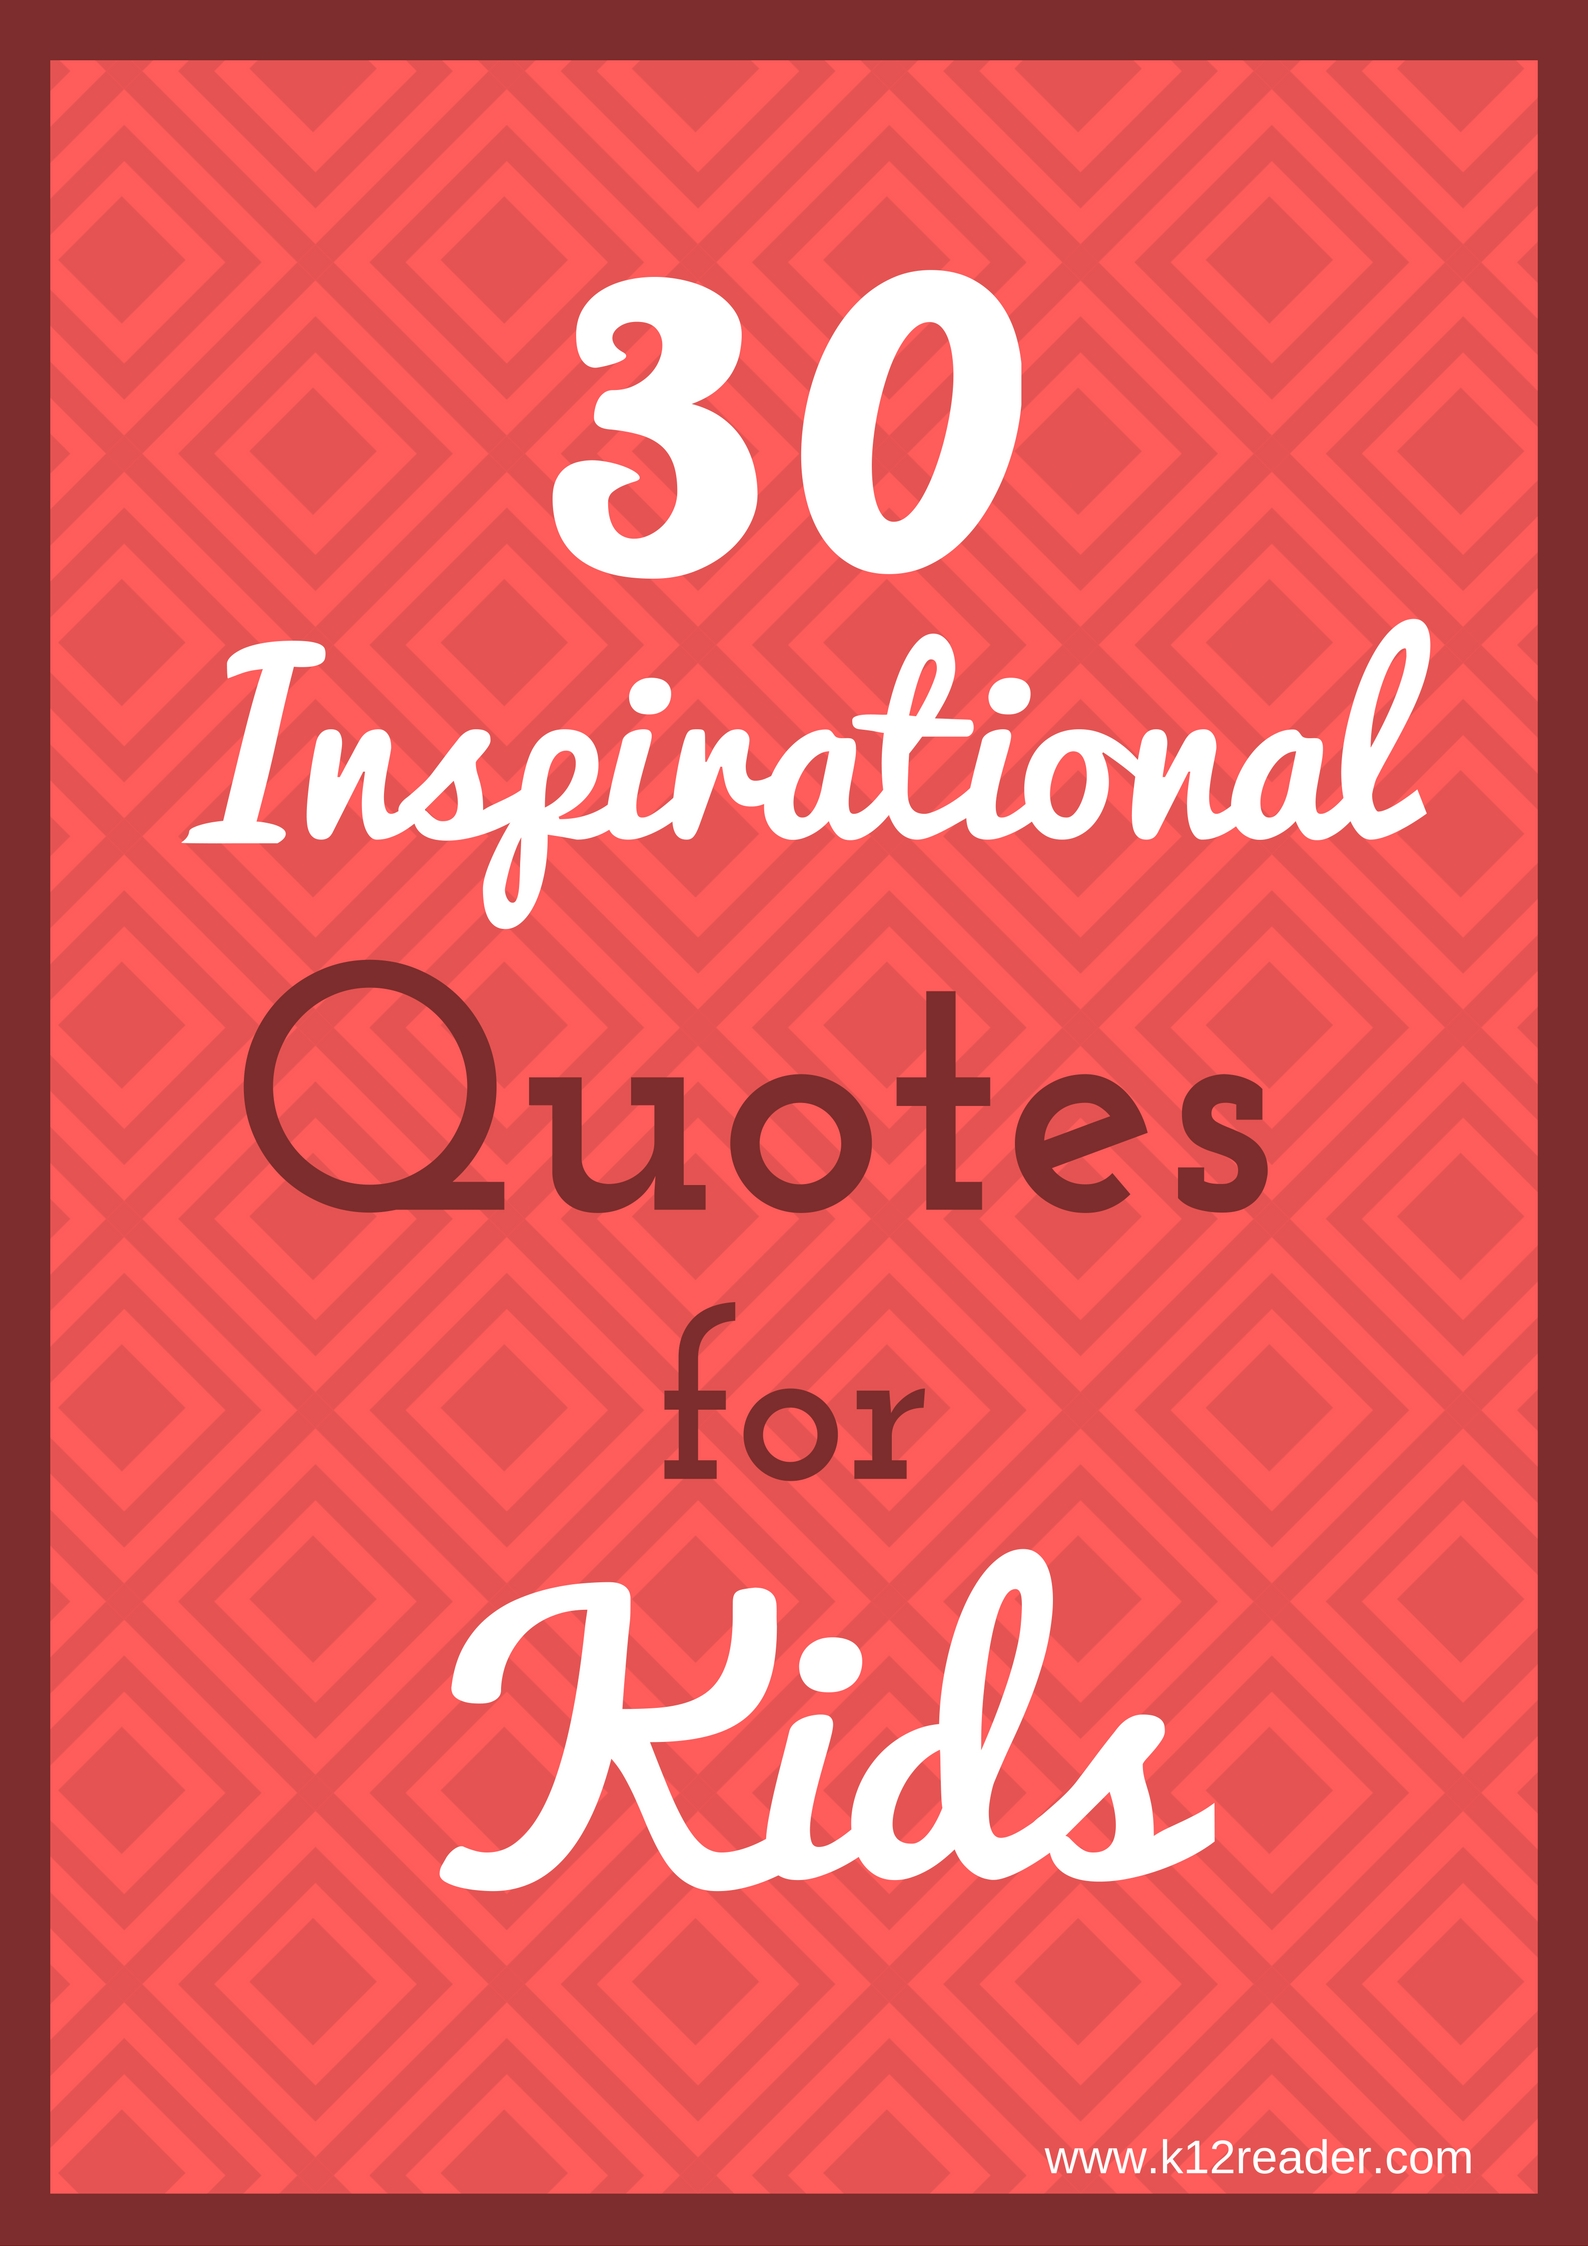 hight resolution of 30 Inspirational Quotes for Kids